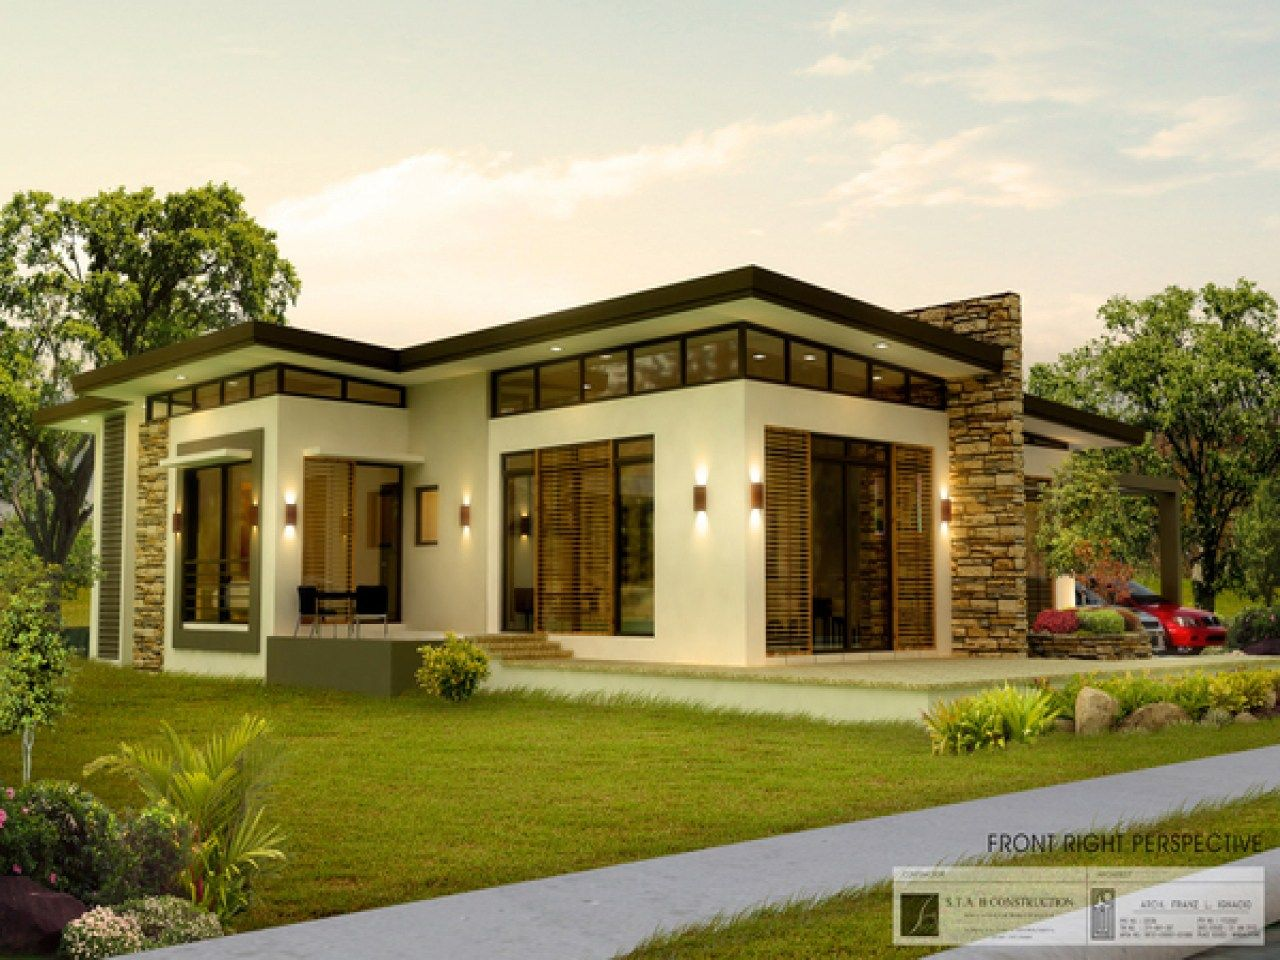 Home plans philippines bungalow house plans philippines design tokjanggutphoto bungalow design - Bungalow house plans with photos ...